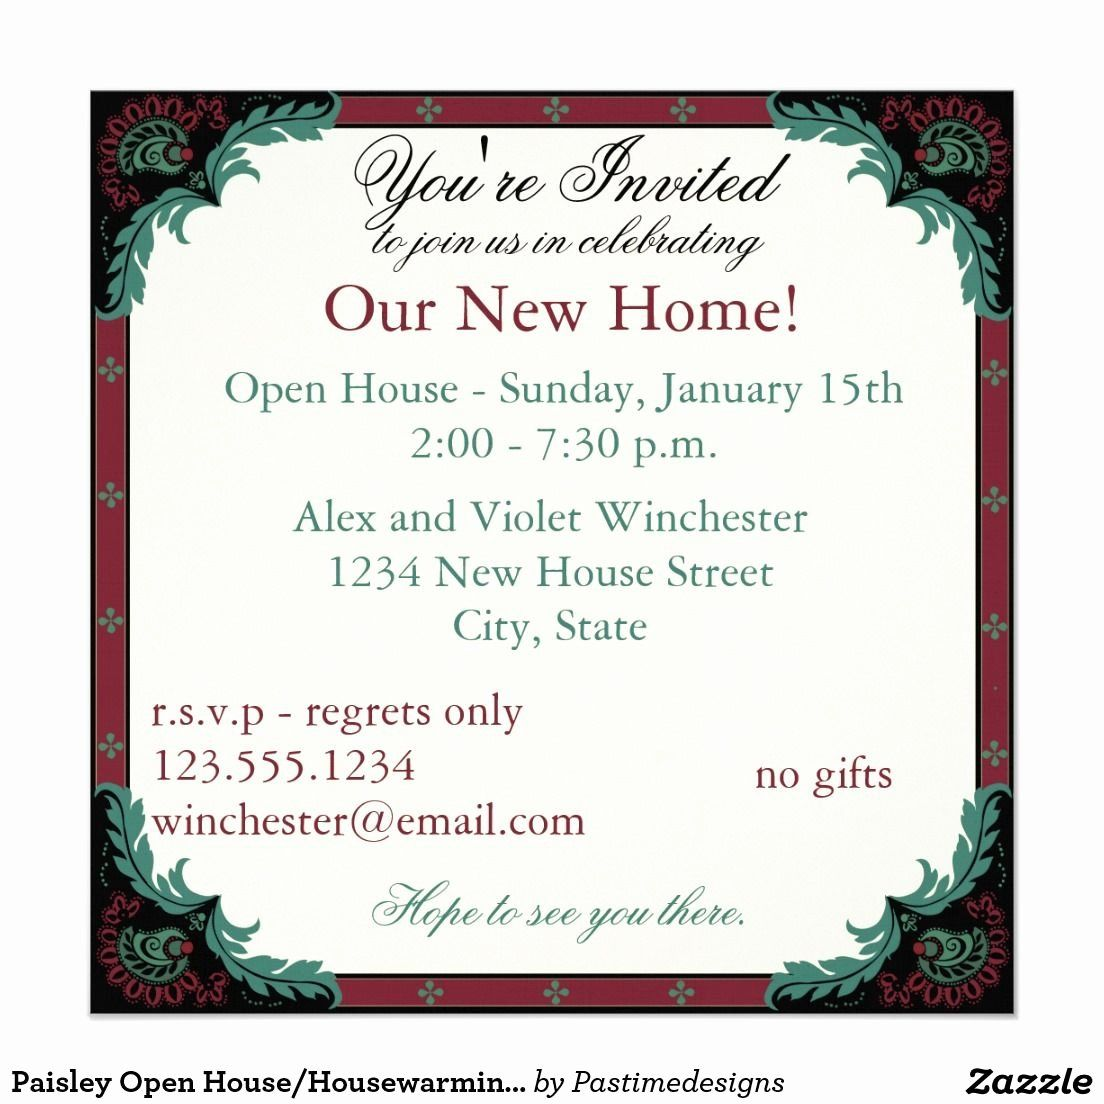 Office Open House Invitation Wording Lovely Paisley Open House